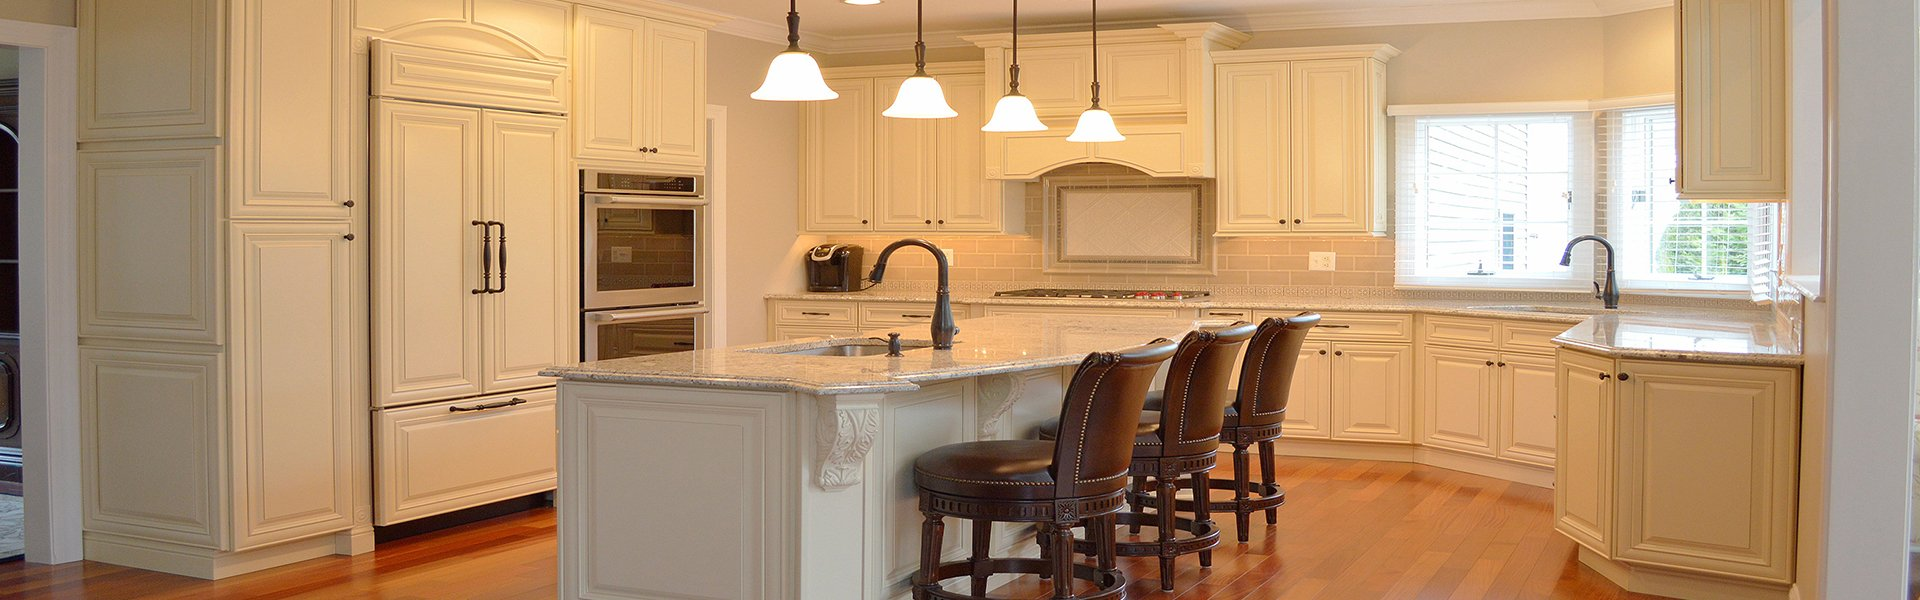 Kitchen Remodeling & Cabinet Renewal | Long Island Wood ...